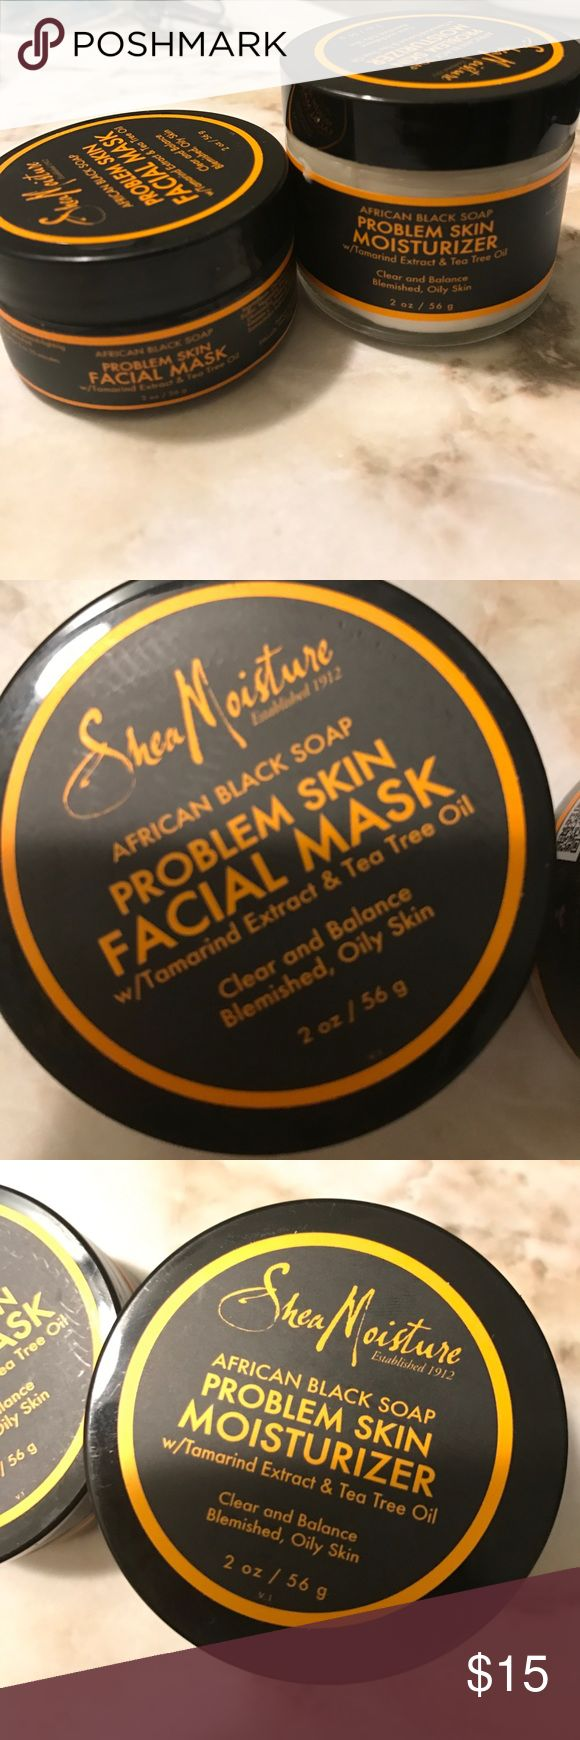 SHEA MOISTURE PROBLEM SKIN FACE MASK & MOISTURIZER barely used Shea Moisture facial mask and moisturizer! Great product for acne prone skin. Has Tea tree oil with tamarind extract. Beneficial for the oily skin types. shea moisture  Makeup